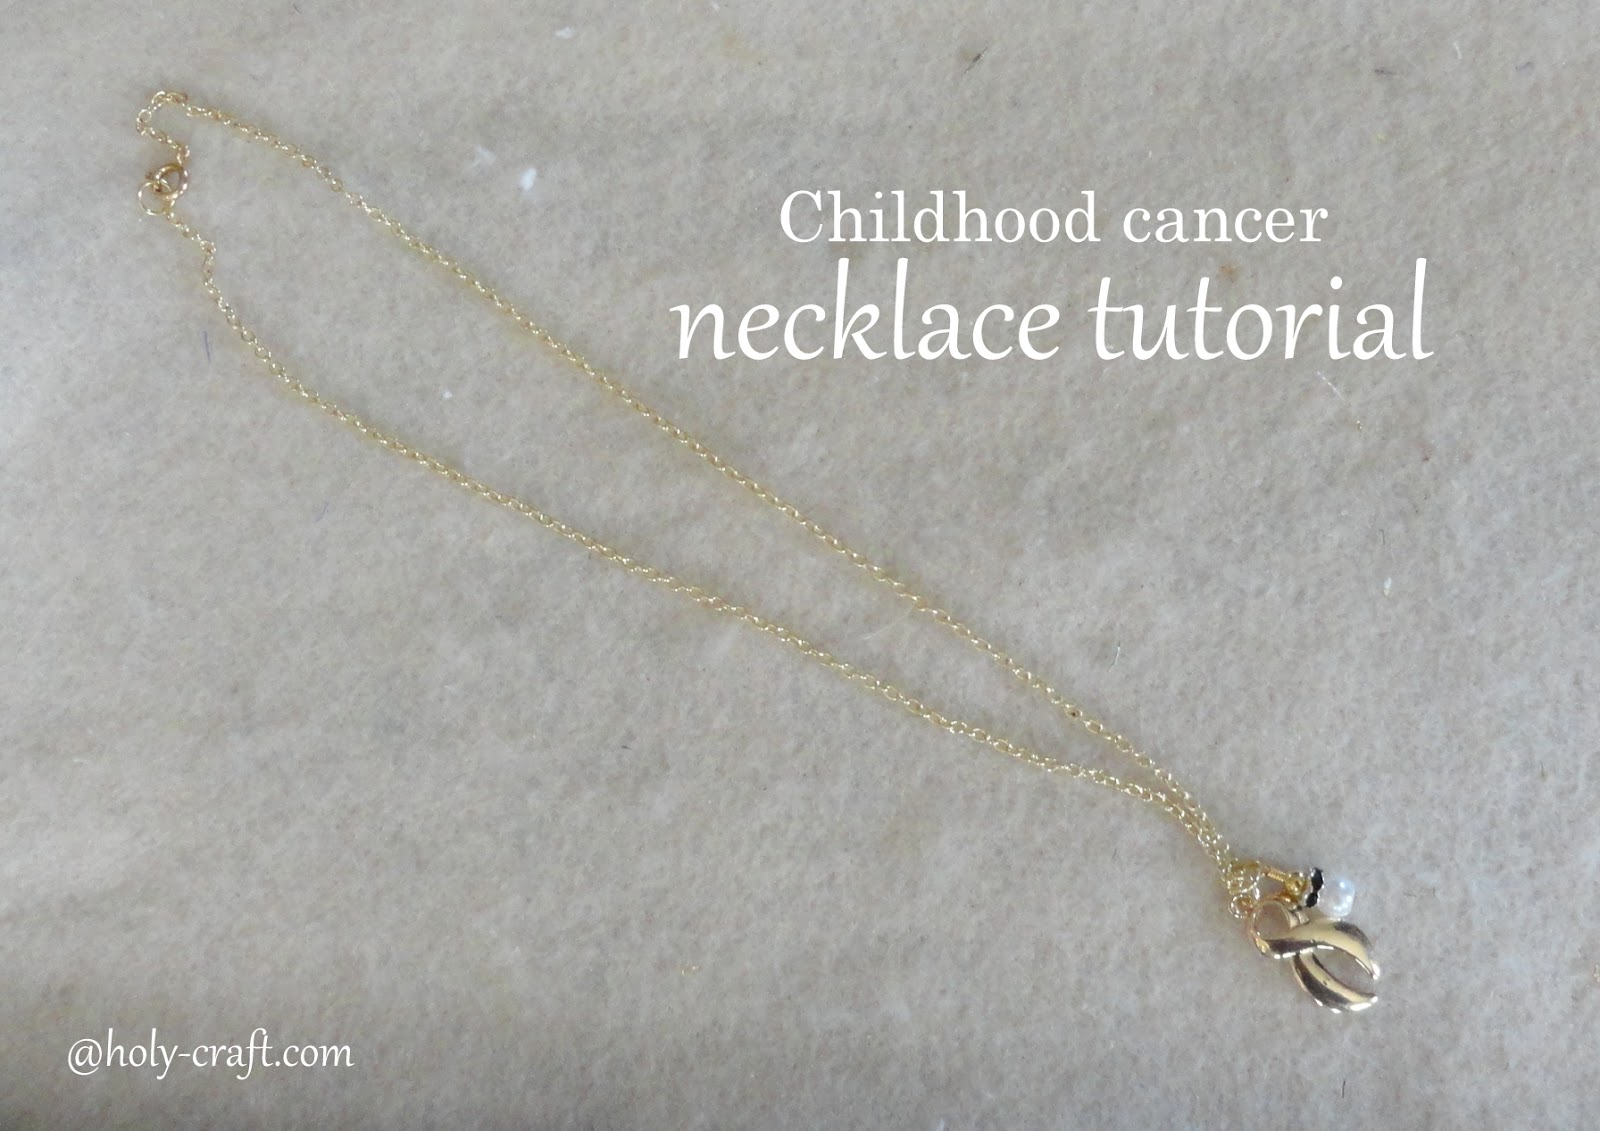 http://2.bp.blogspot.com/-iOE2Ah_-bZY/UwqcJUEamkI/AAAAAAAAXm0/_8CSVBQFtgg/s1600/childhood+cancer+necklace.jpg